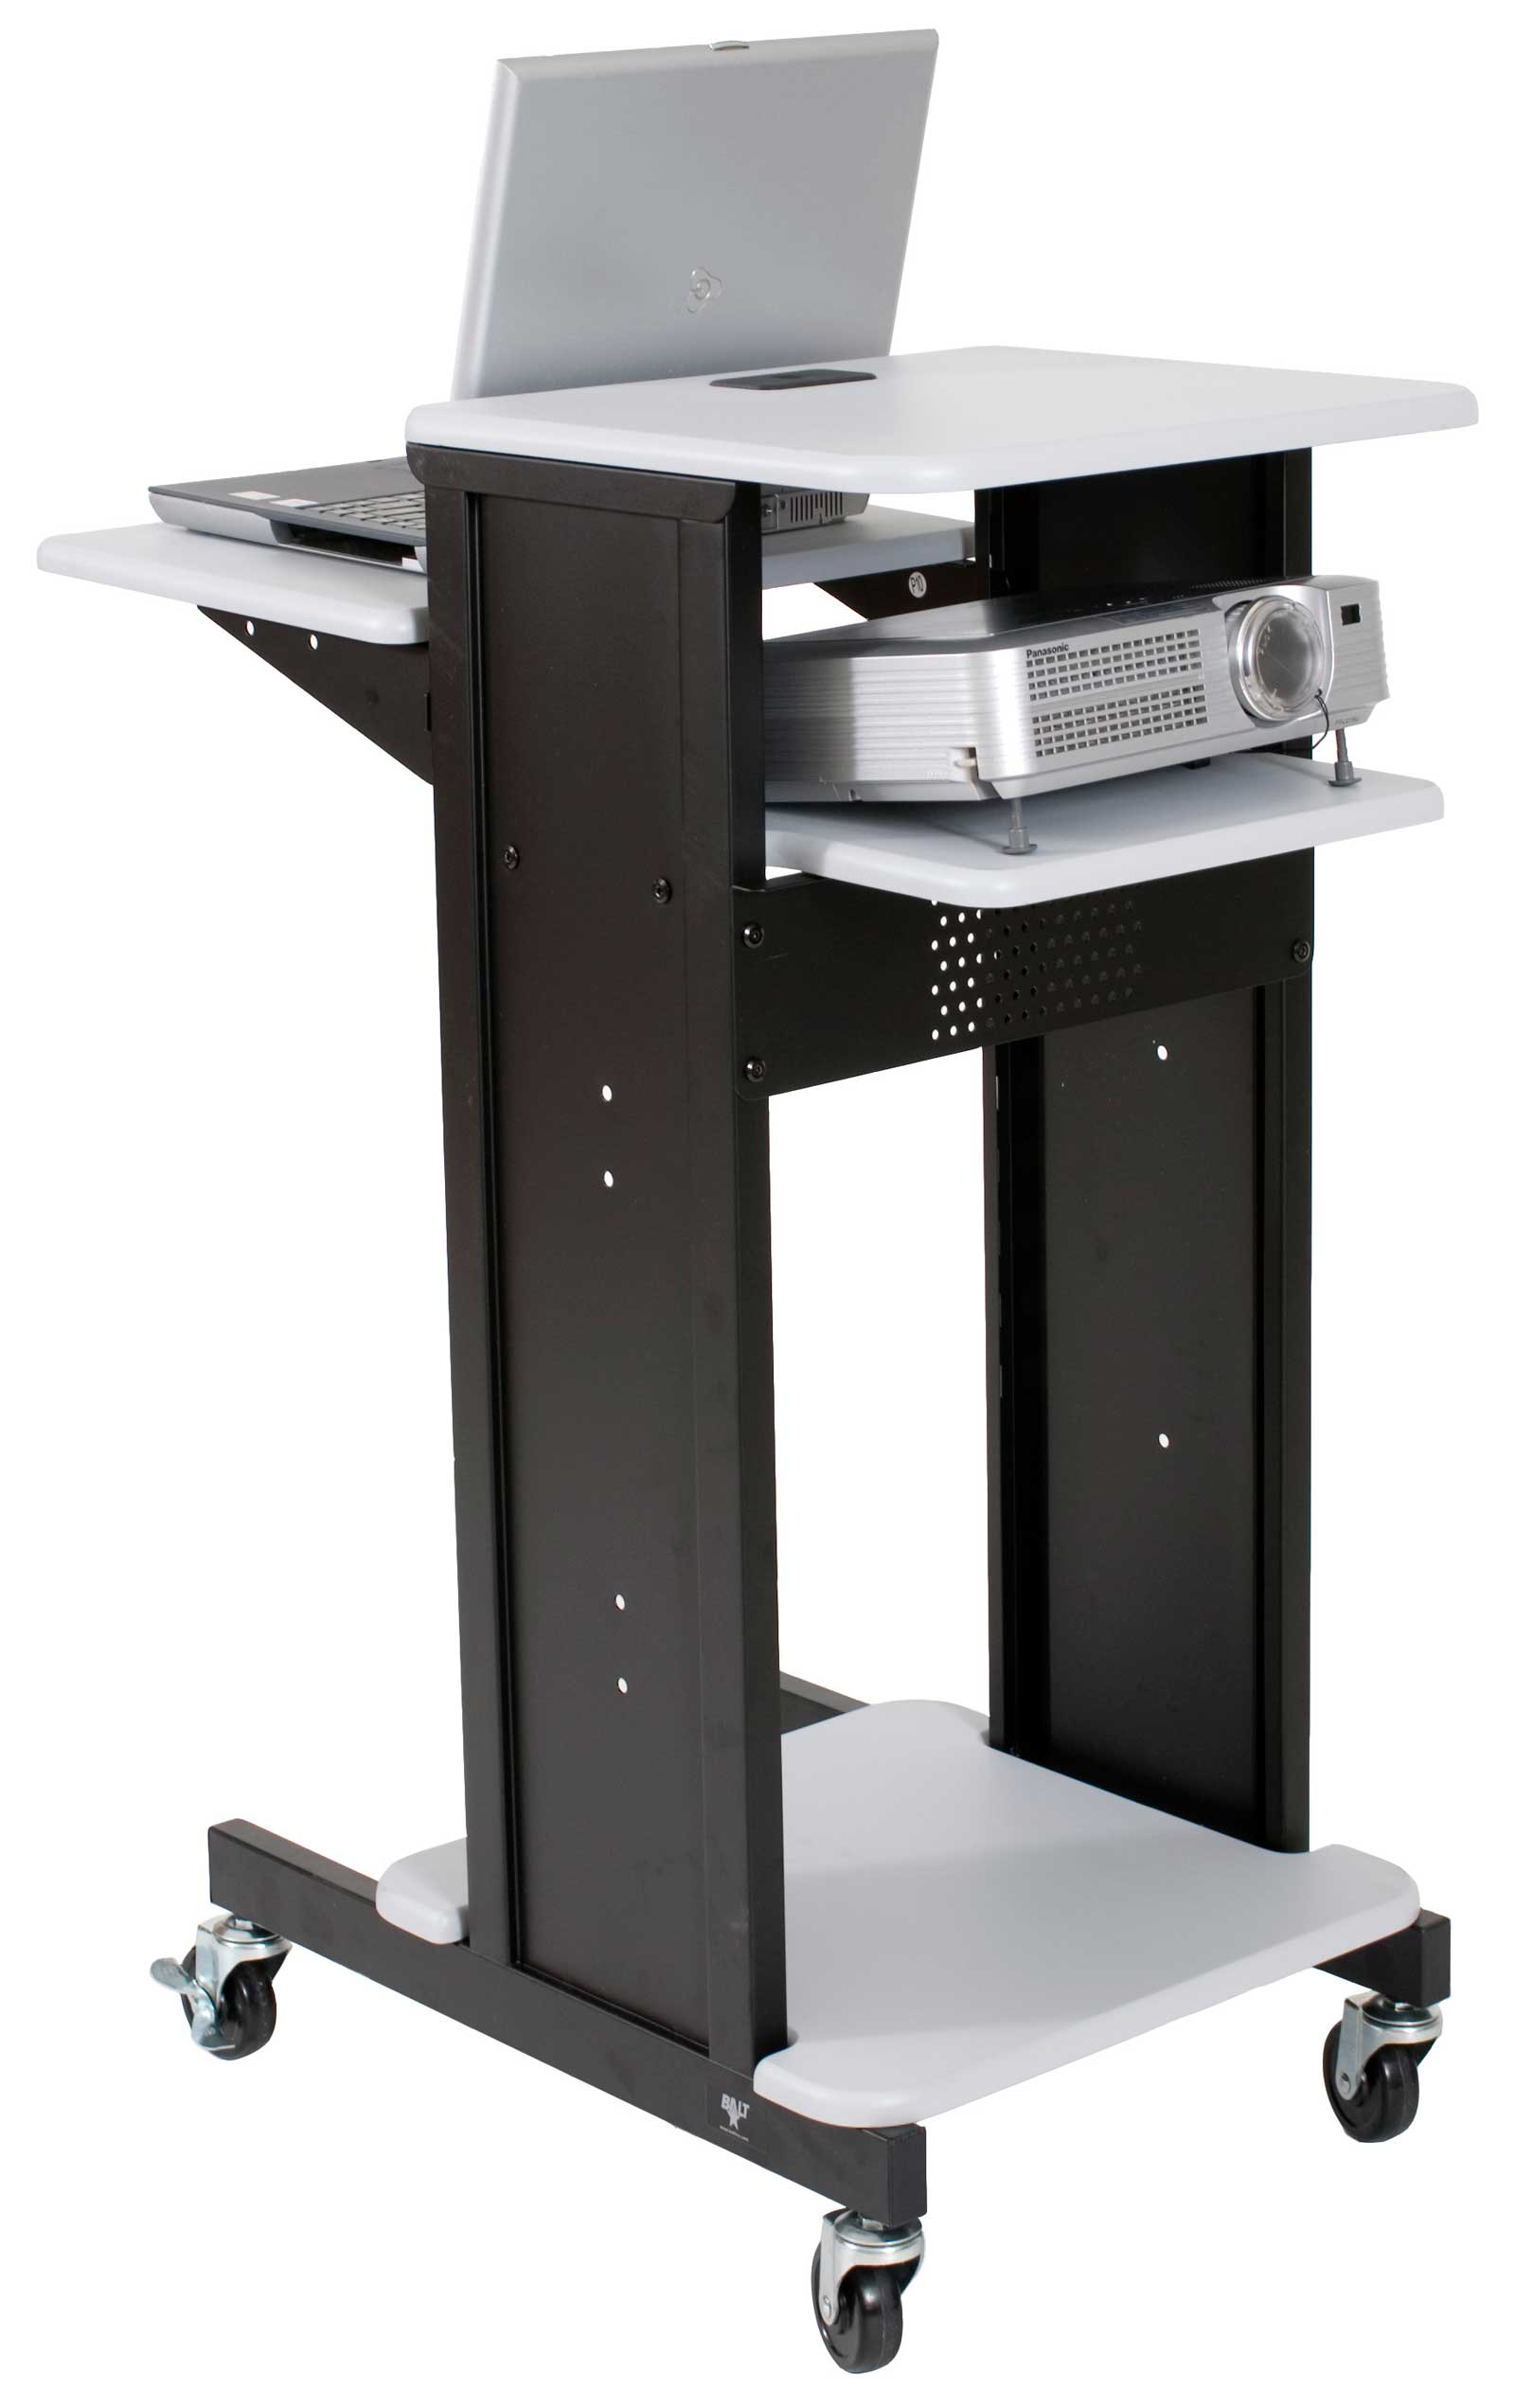 Balt laptop presentation cart in black